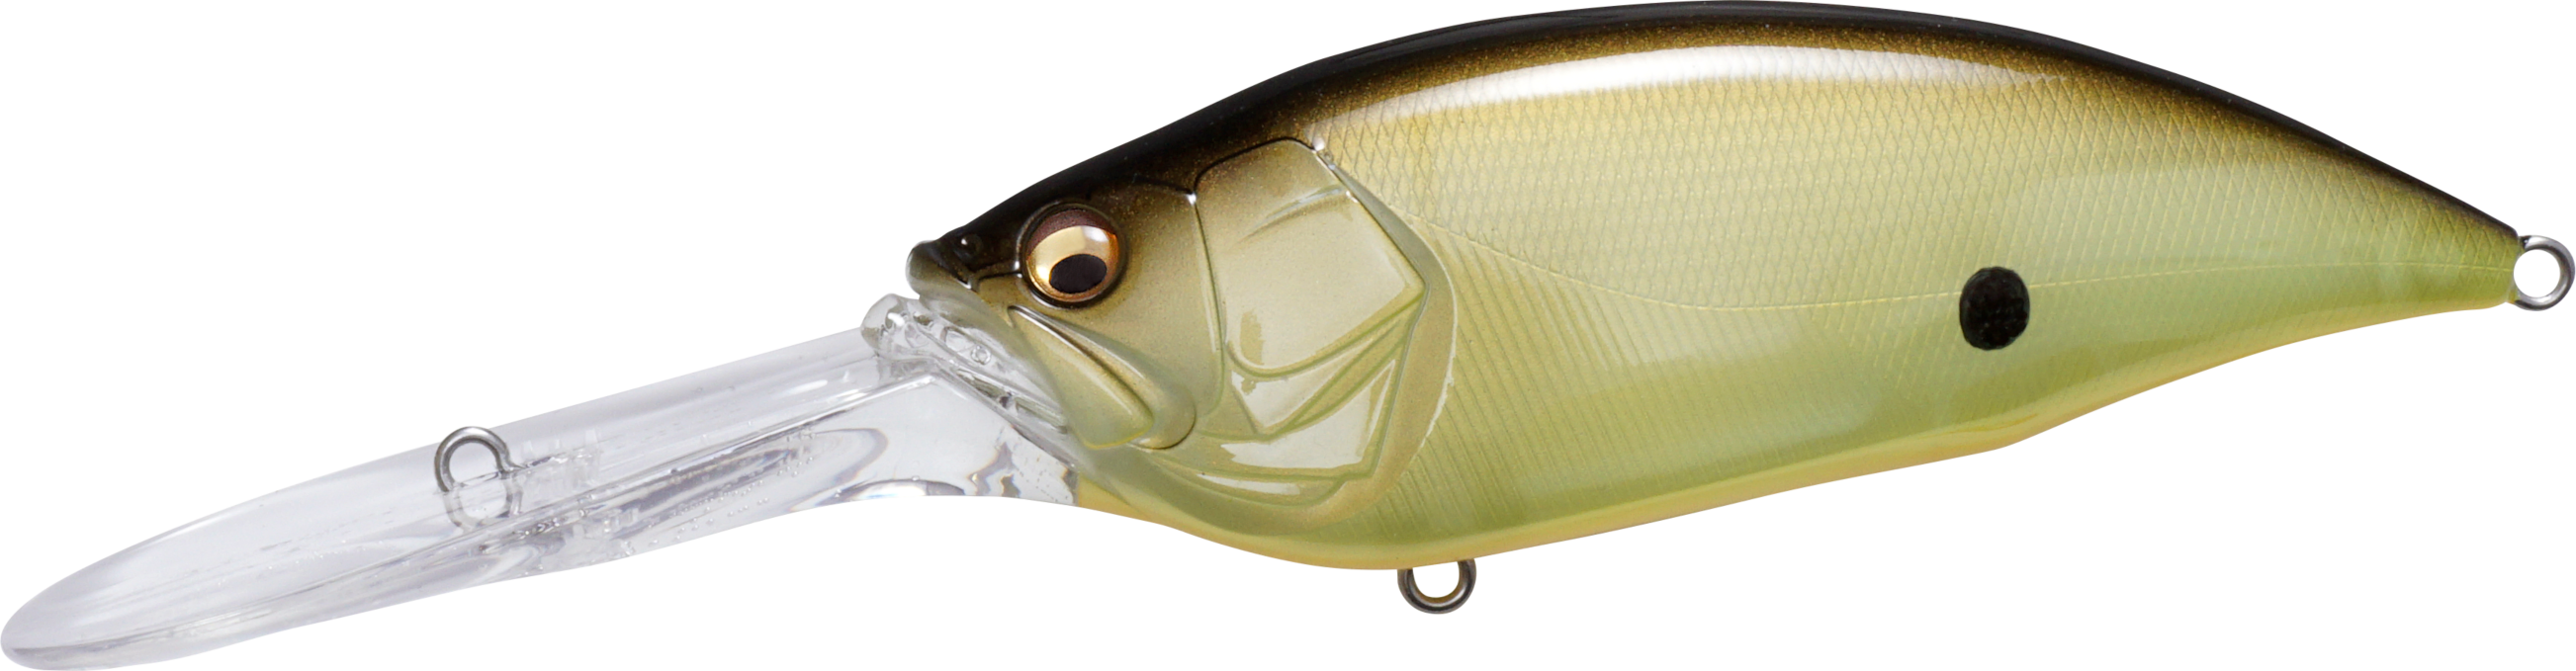 Megabass Big-M 7.5 Magnum Extra Deep Diving Crankbait